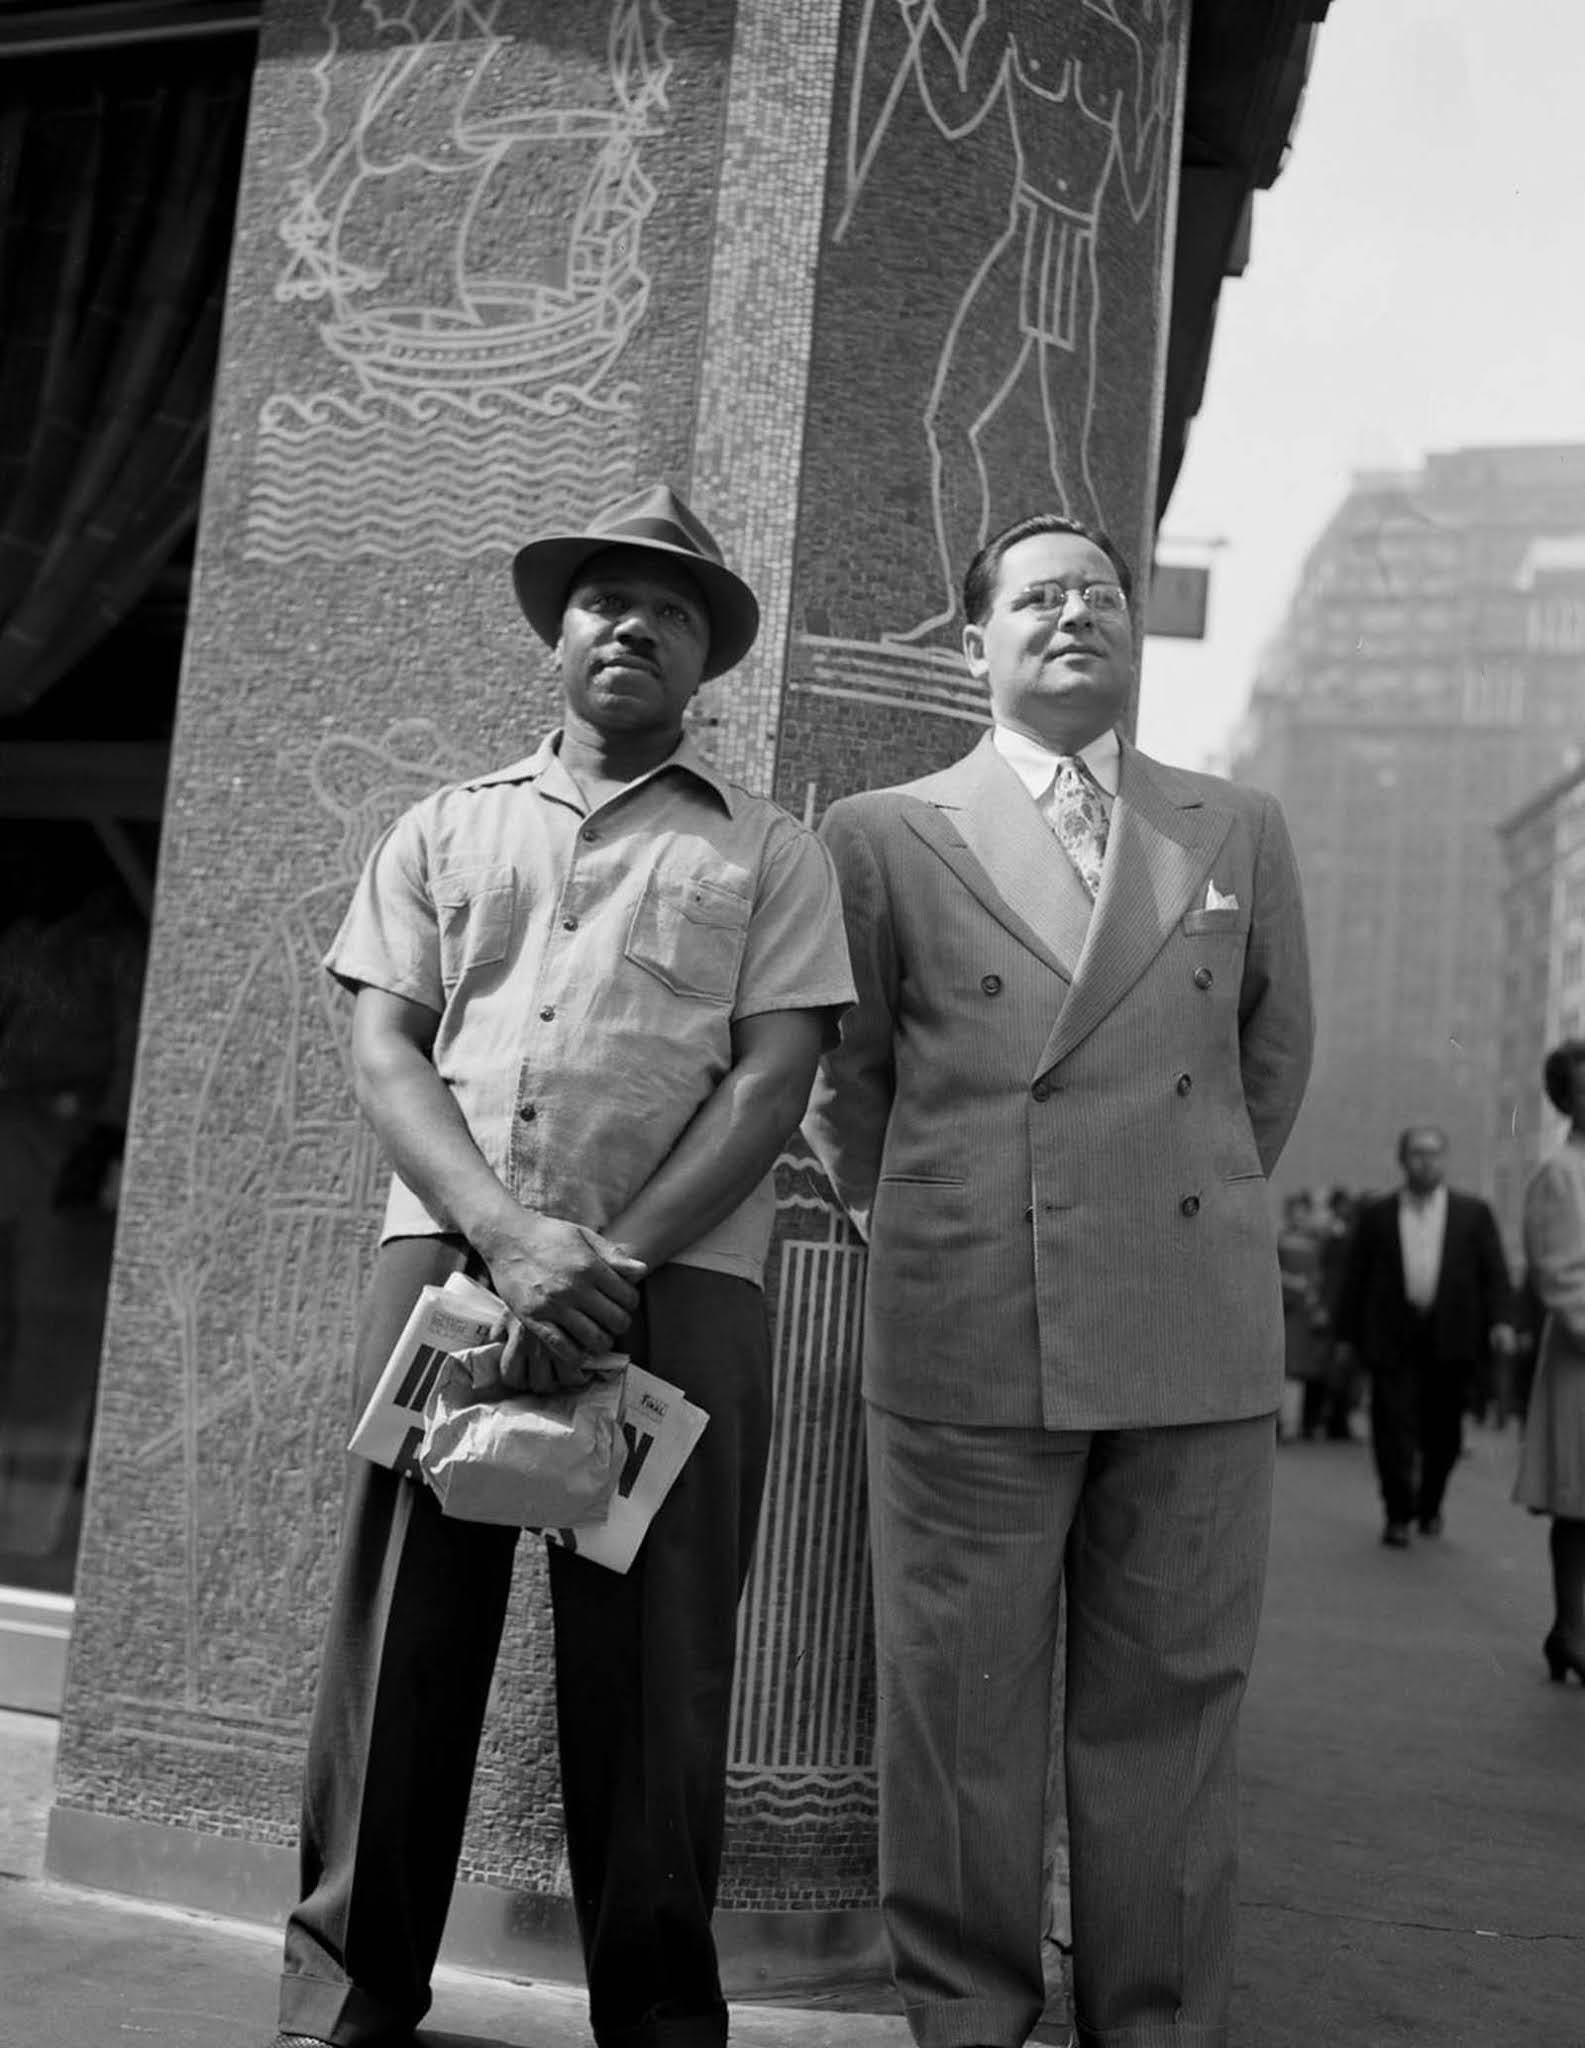 Two men stand tersely on a street corner on the day that news broke.